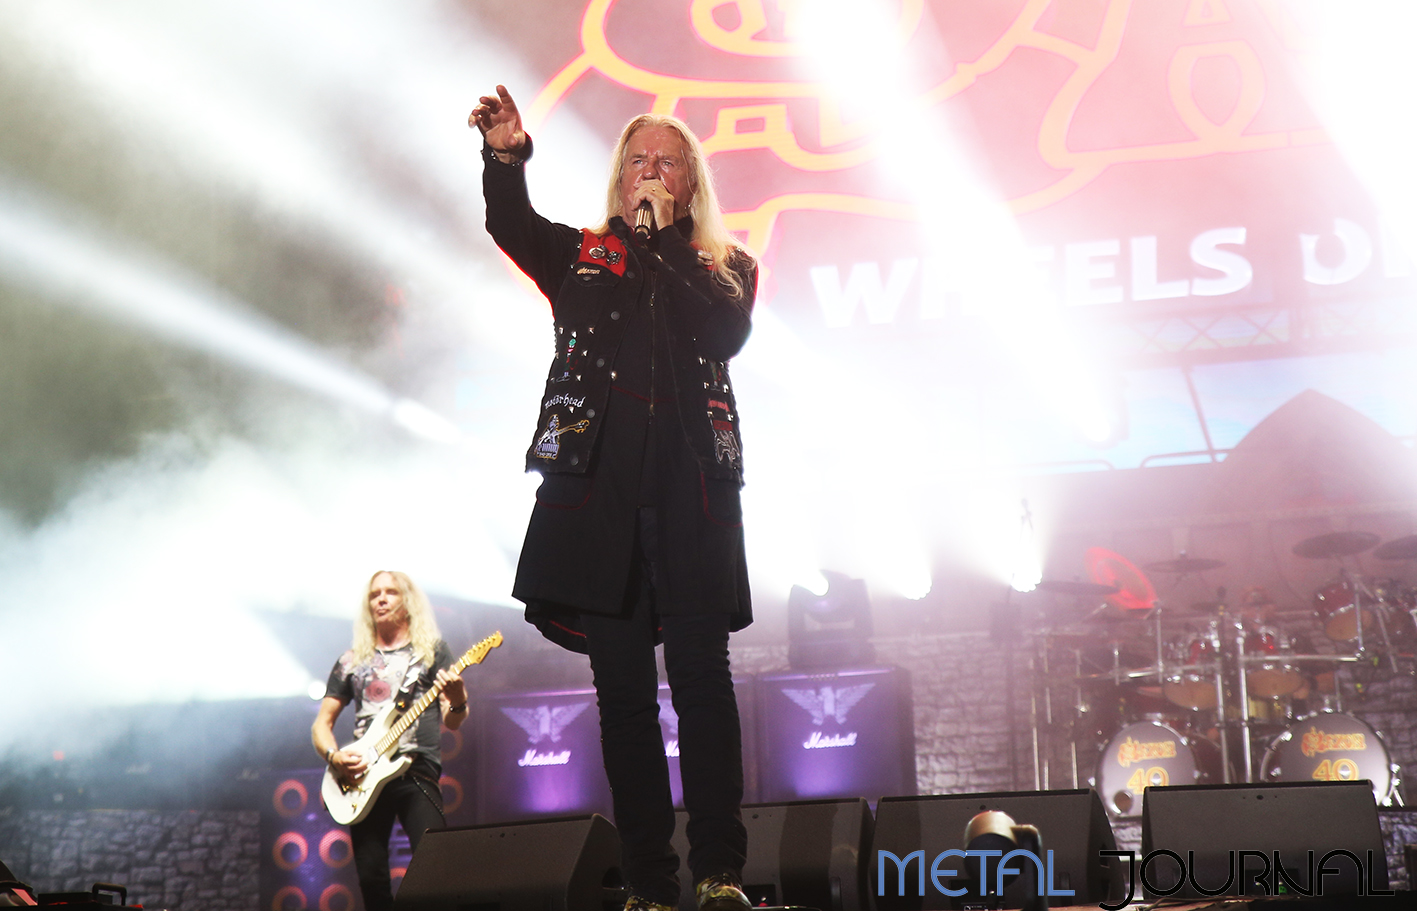 saxon-metal journal rock fest barcelona 2019 pic 6